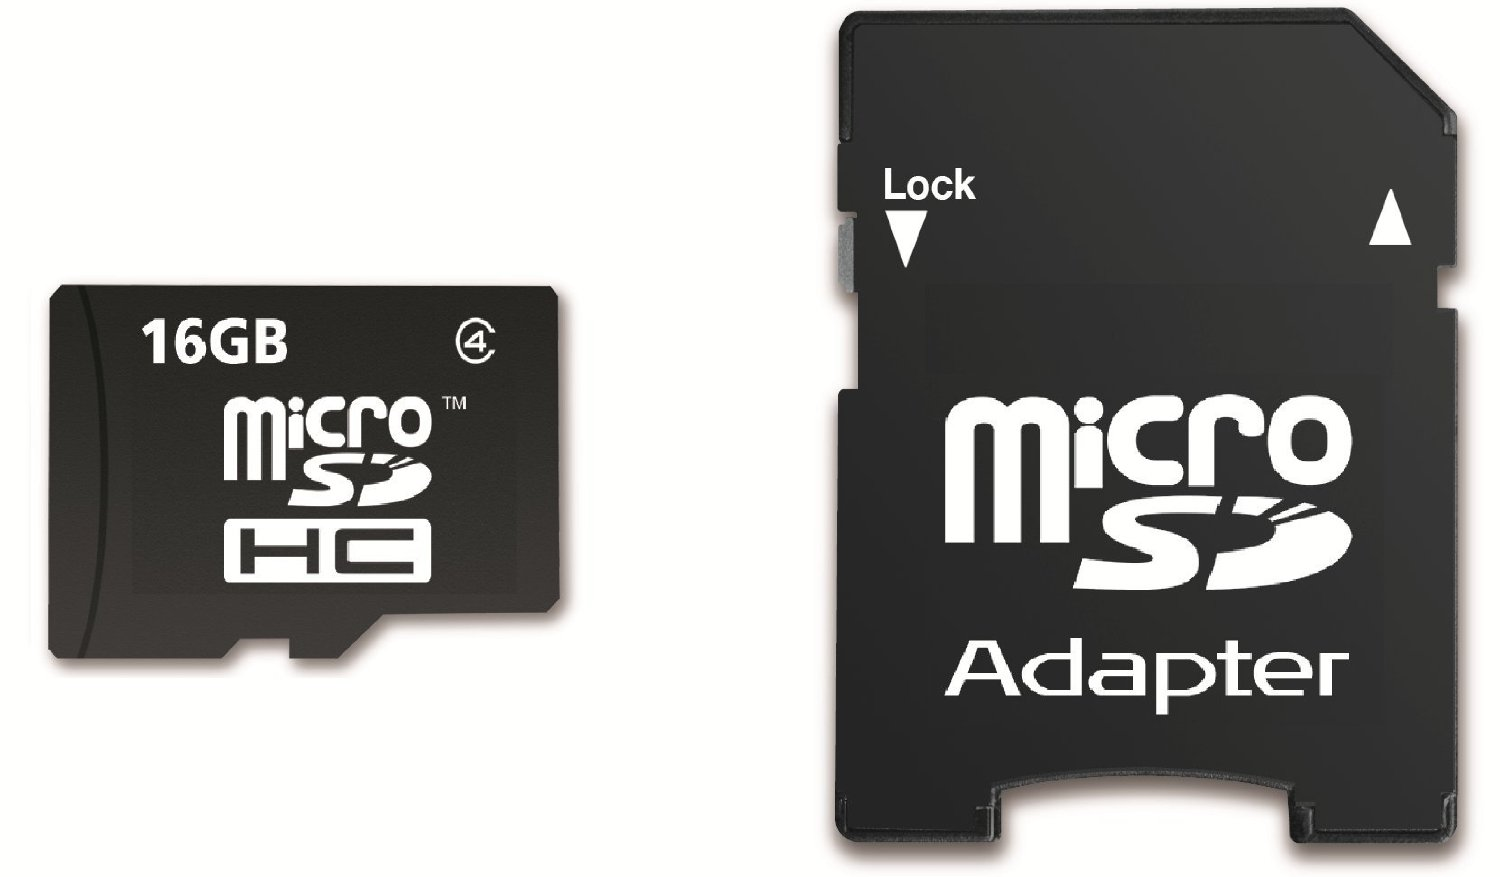 Shark 16GB Micro SDHC Memory Card with SD Adapter for Acer